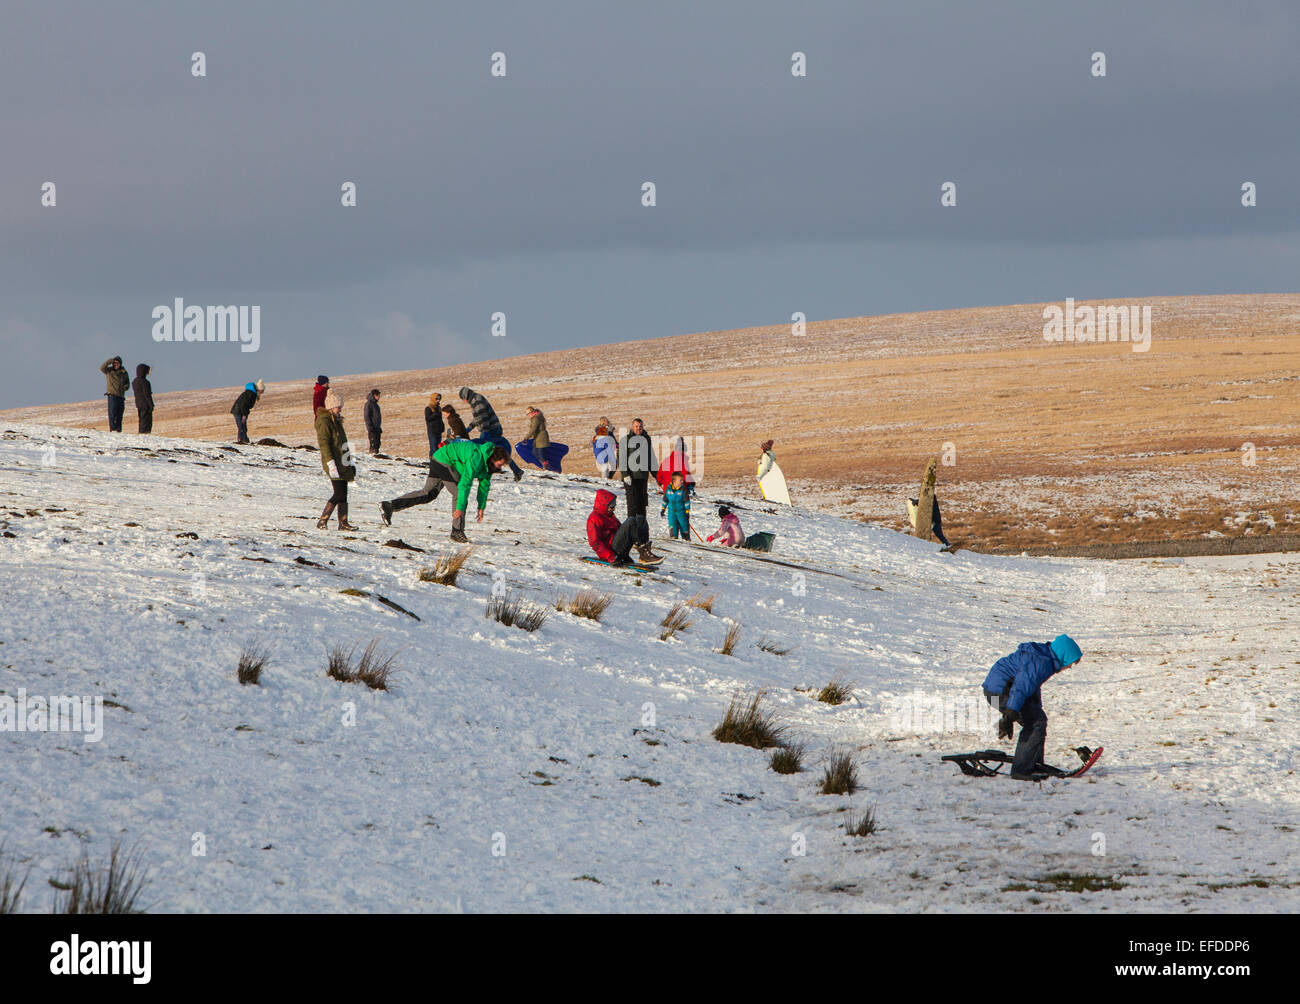 Dartmoor Snow, Devon, UK.1st February, 2015. Families enjoy a bitingly cold snowy day on Dartmoor while sledging - Stock Image